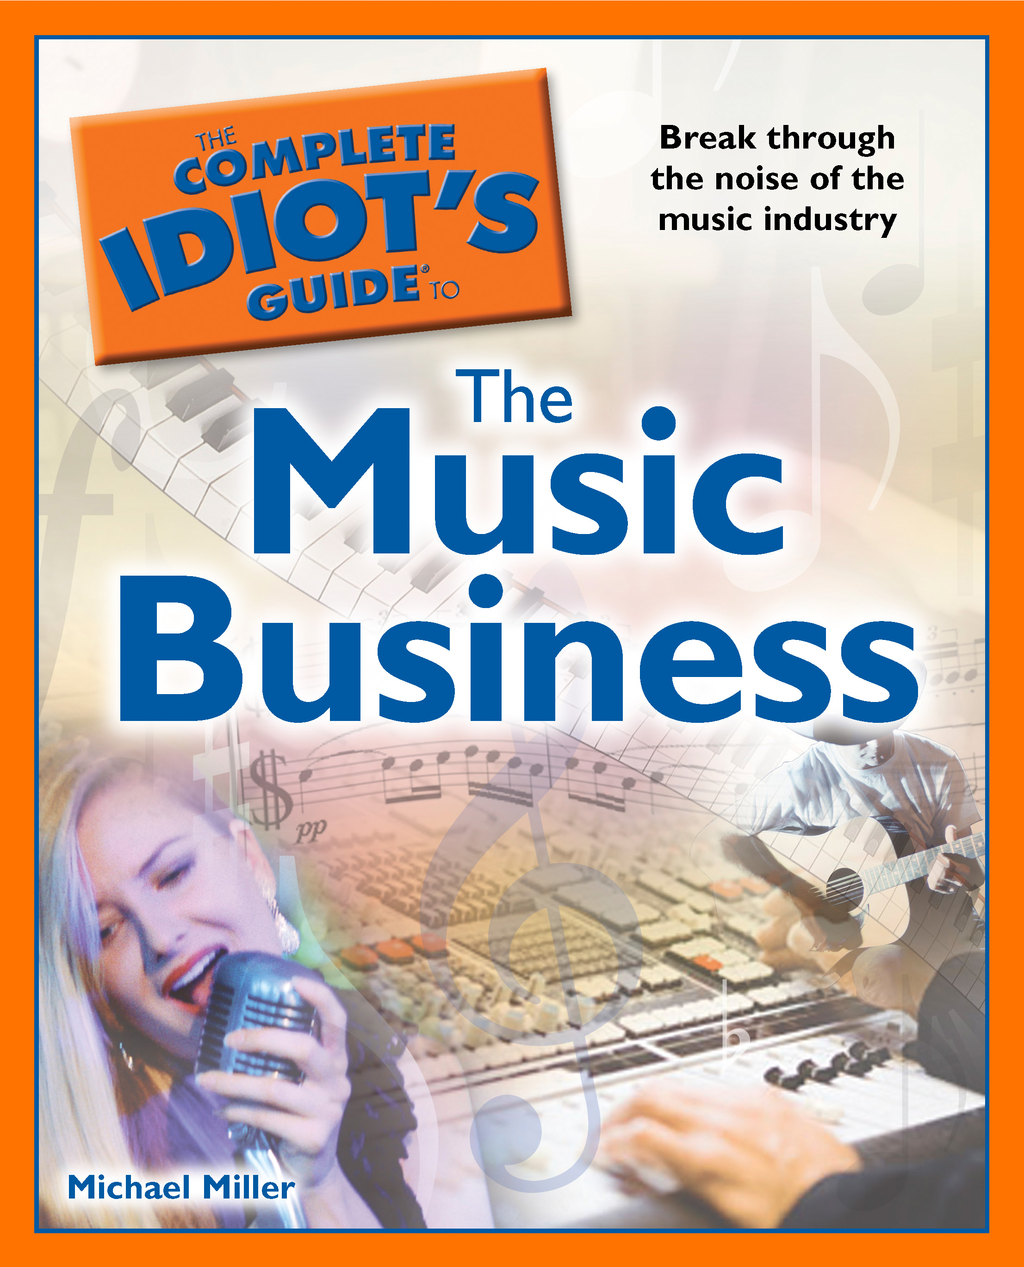 The Complete Idiot's Guide to the Music Business By: Michael Miller